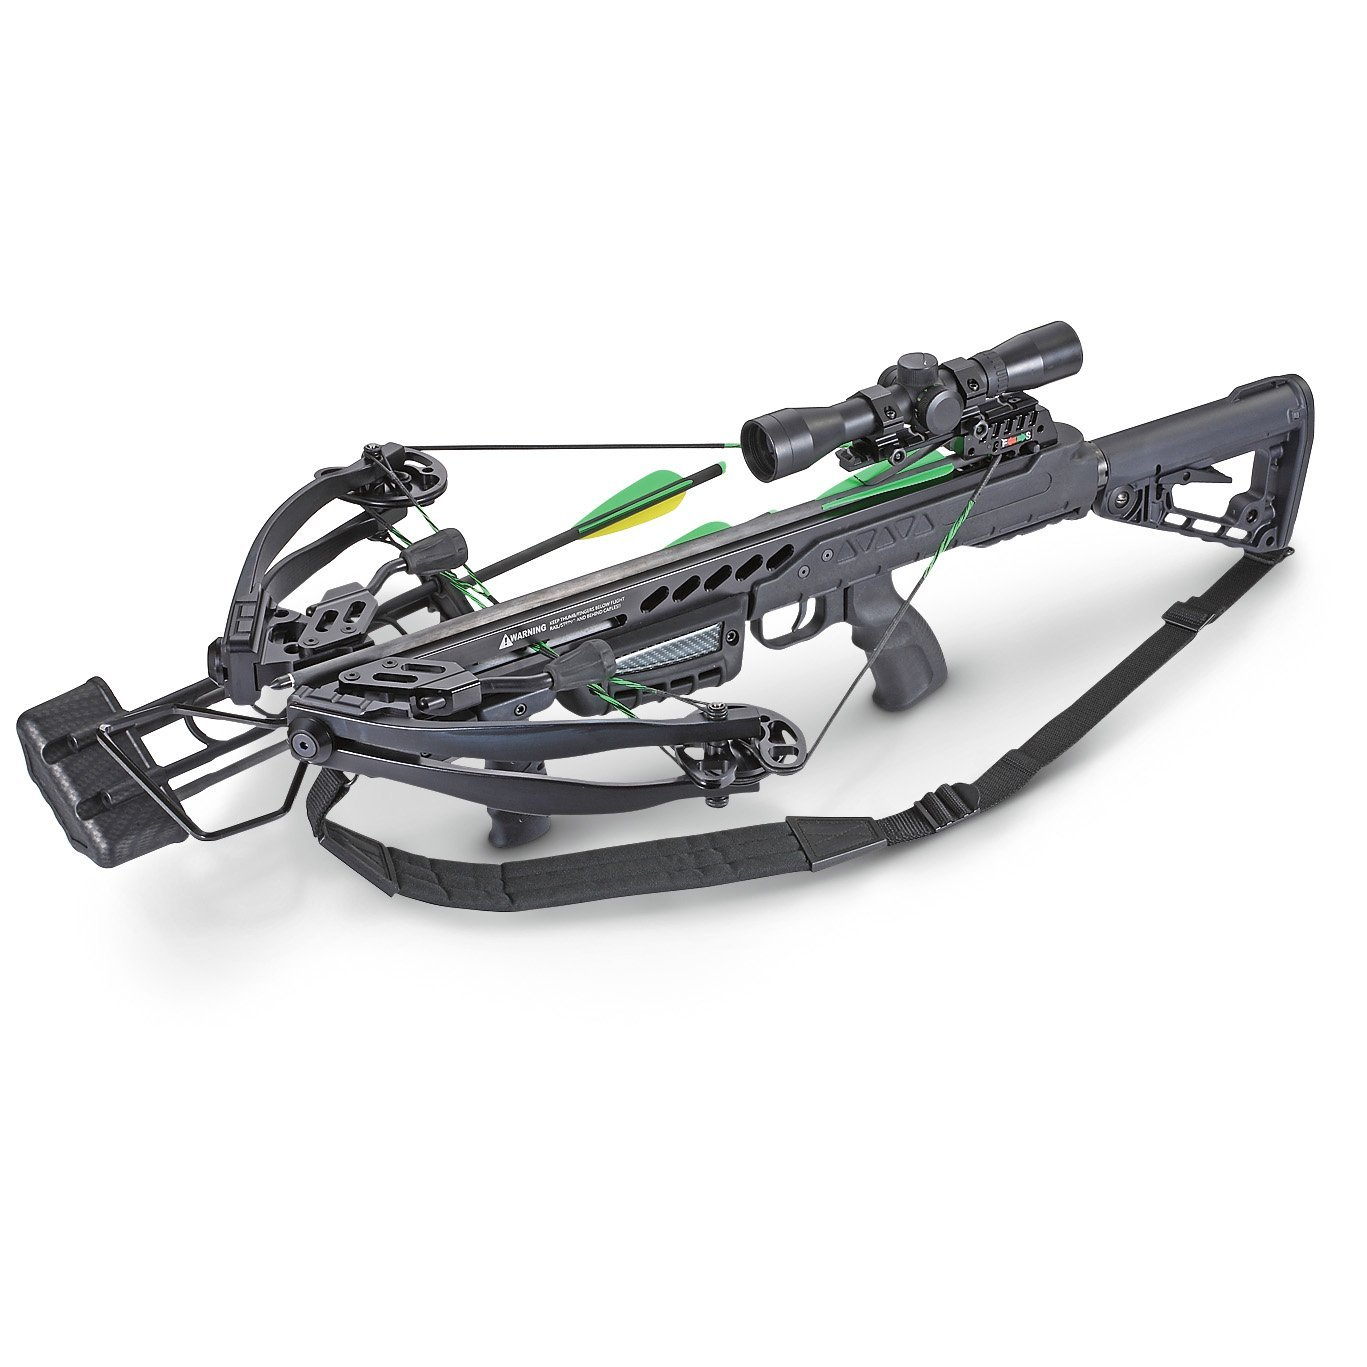 wiring diagram for led light for truck diagram for bow release sa sports empire aggressor review compound crossbow